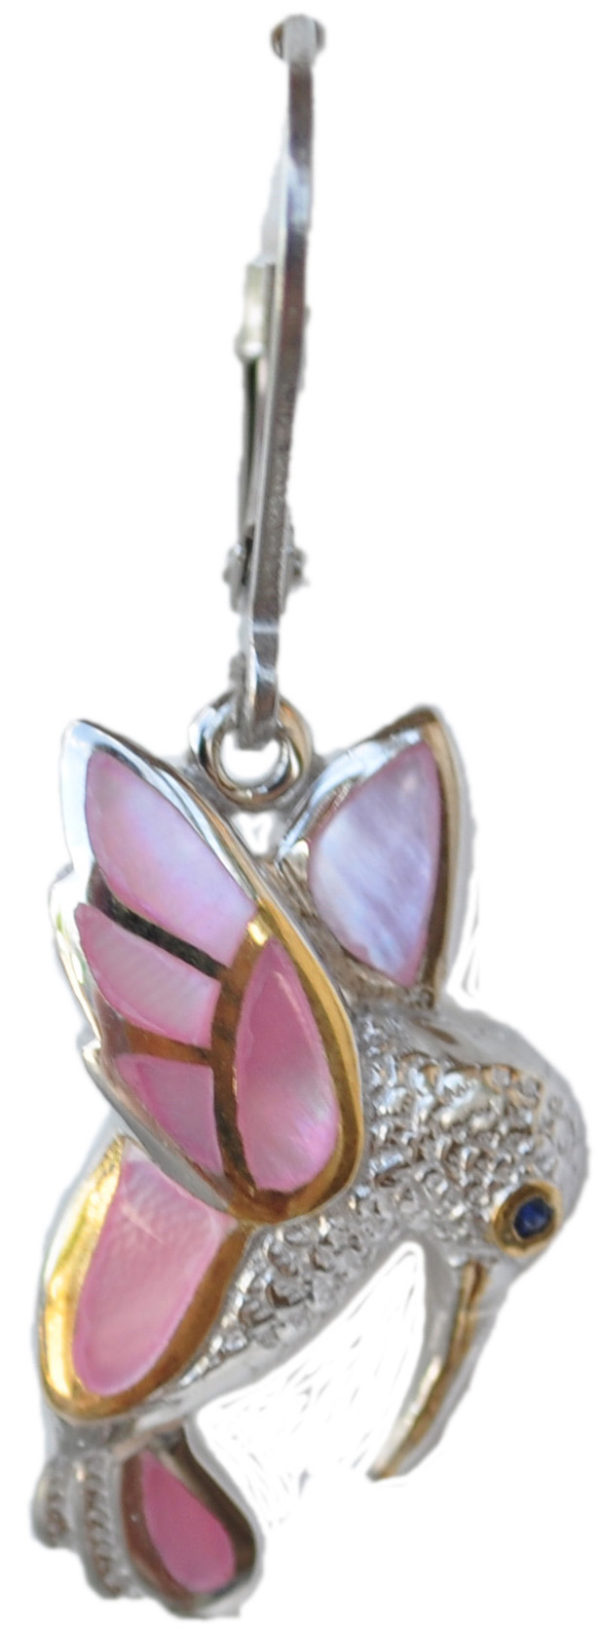 Sterling silver and 18kt gold Humming Bird earrings with mother of pearl by kovel